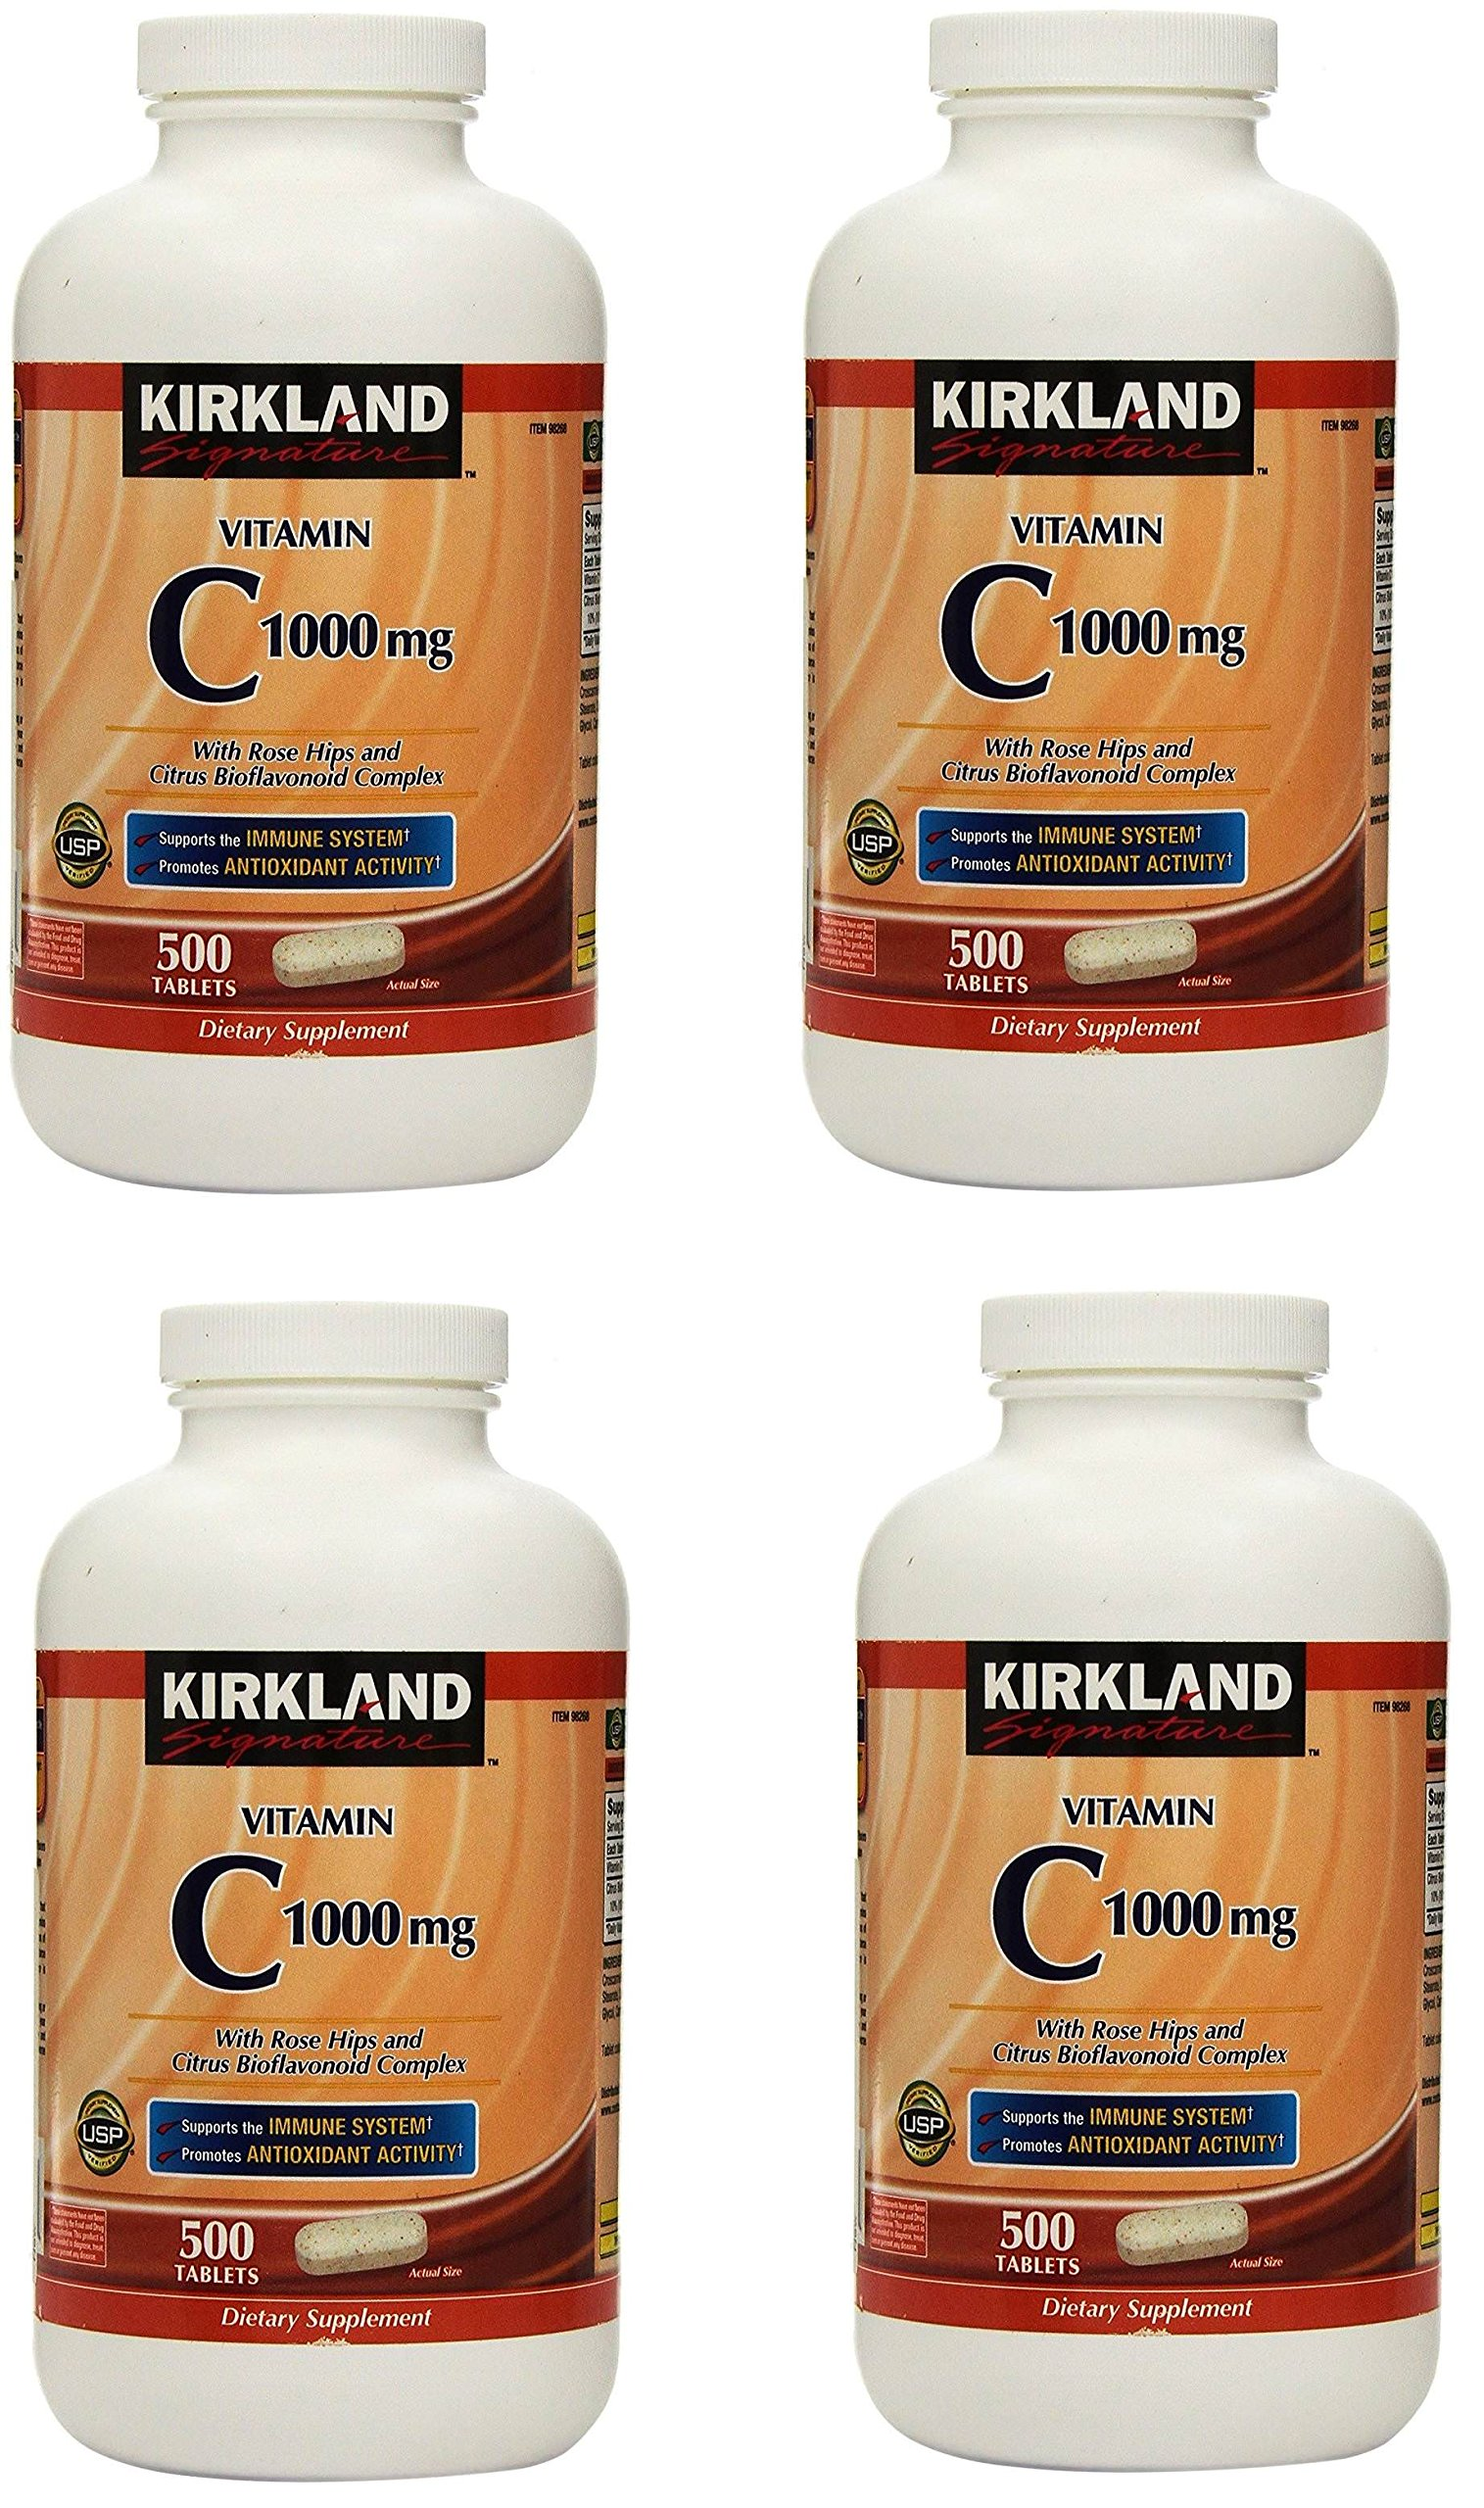 Kirkland Vitamin C with Rose Hips and Citrus Bioflavonoid Complex (1000 mg), 4 Bottles (500 Count Tablets)